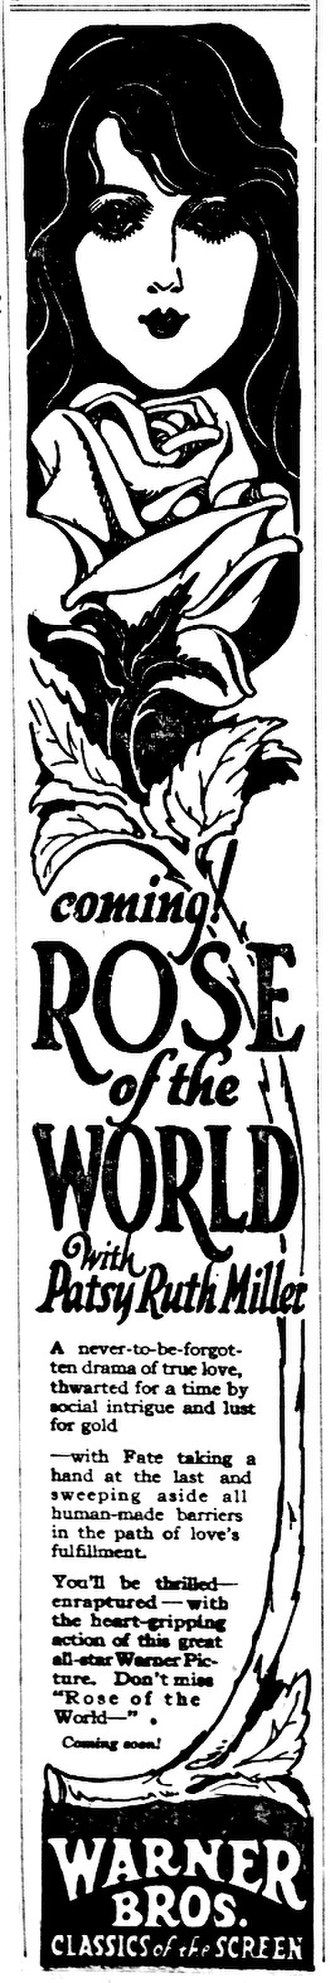 Patsy Ruth Miller - 1926 advertisement for Rose of the World